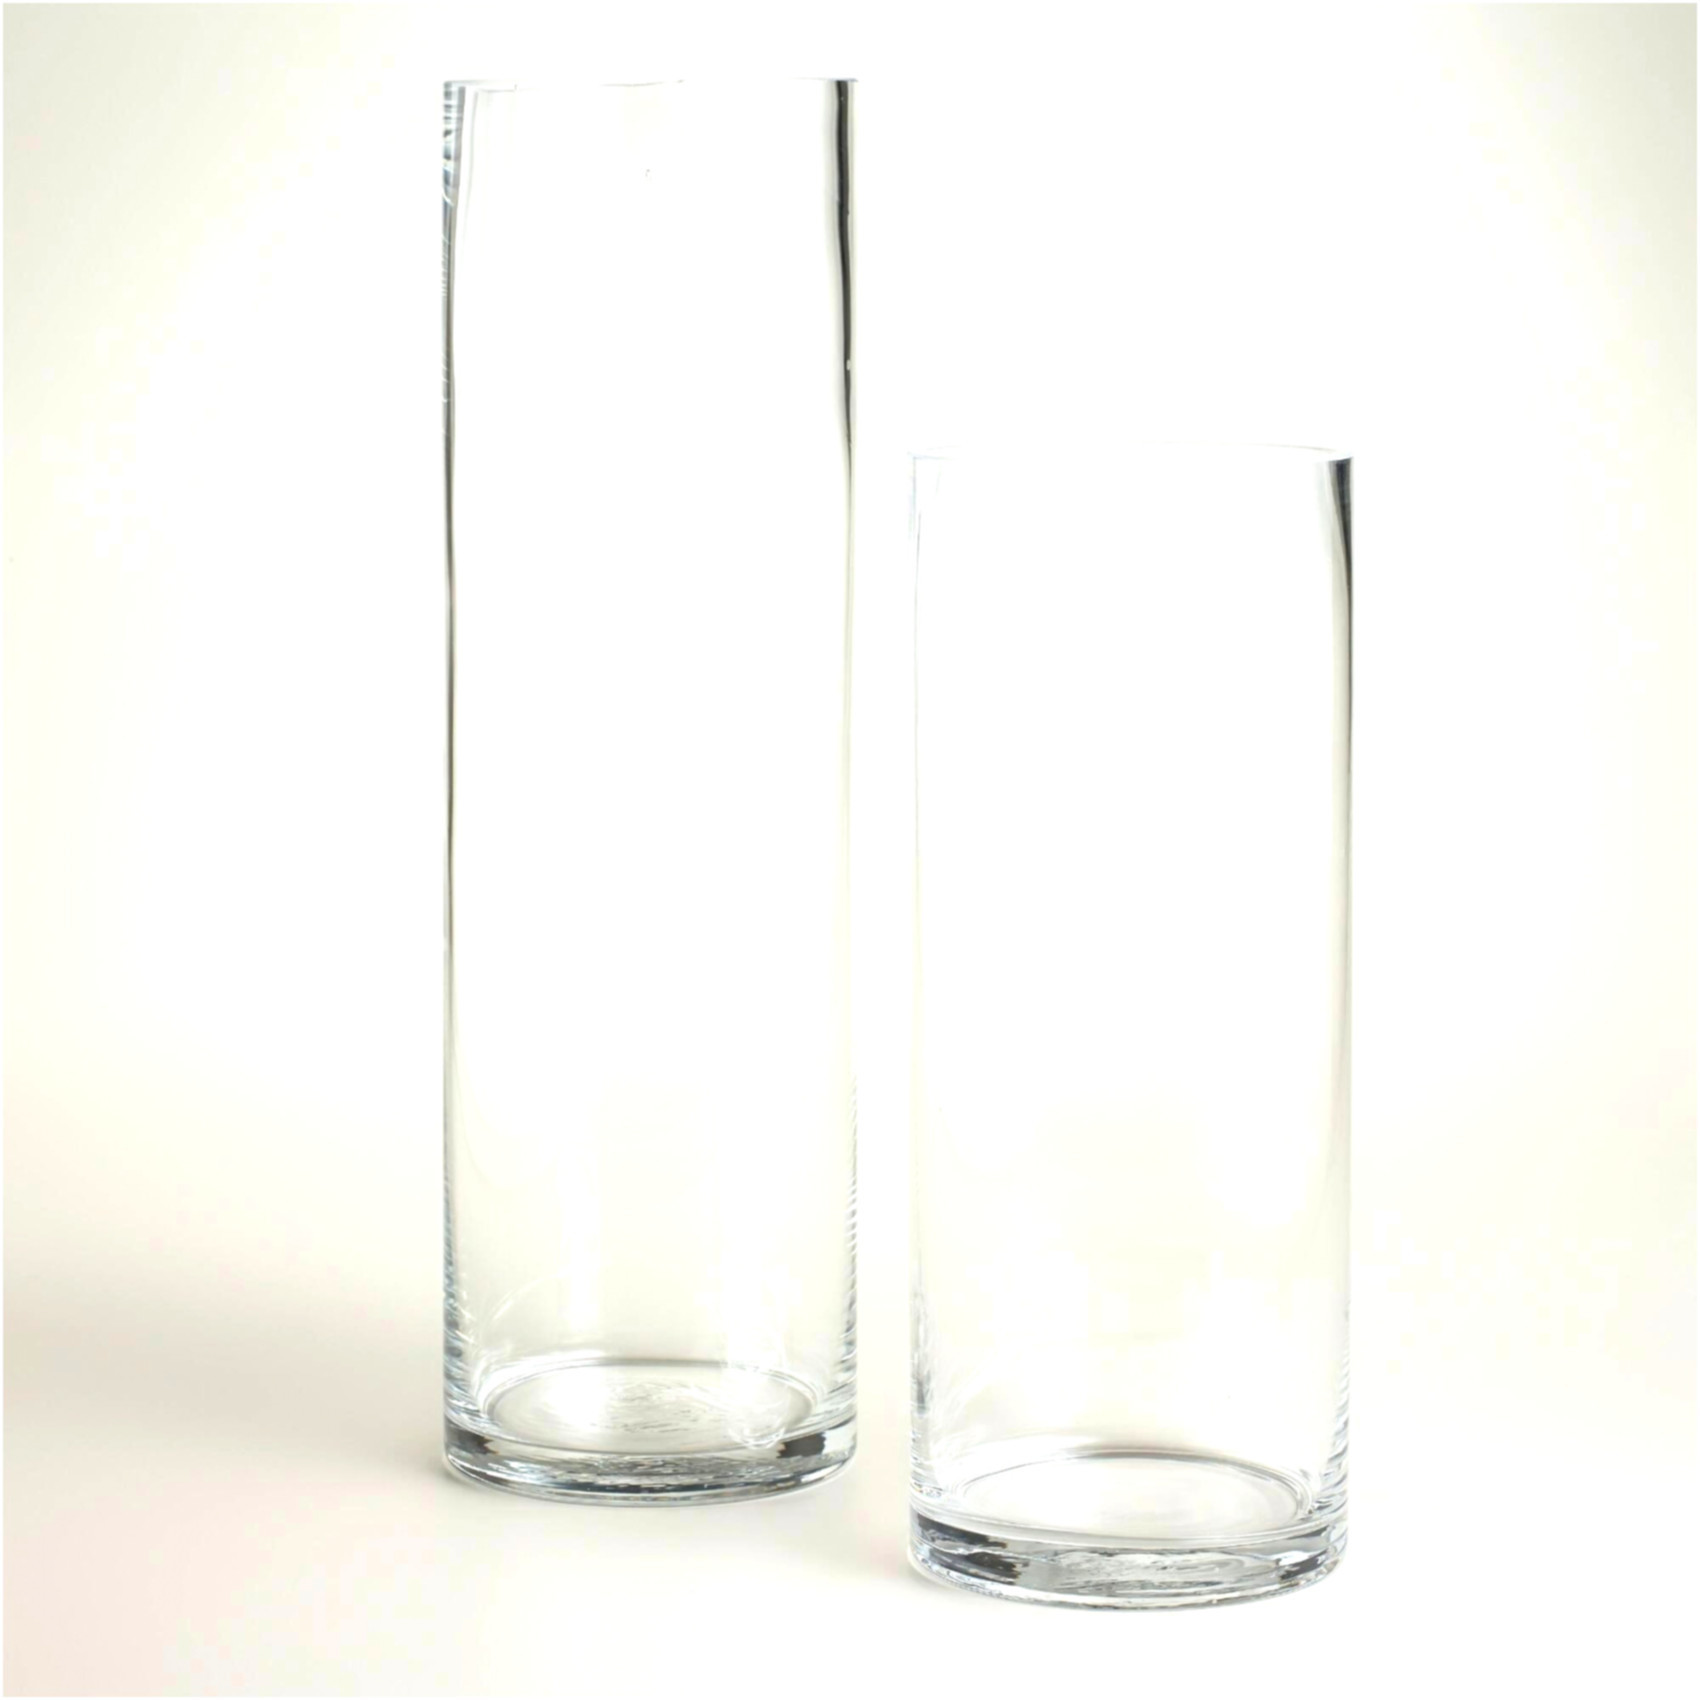 glass bud vases wholesale of why you should not go to glass vases wholesale glass vases inside crystal glass vases wholesale inspirational 30 elegant vases with